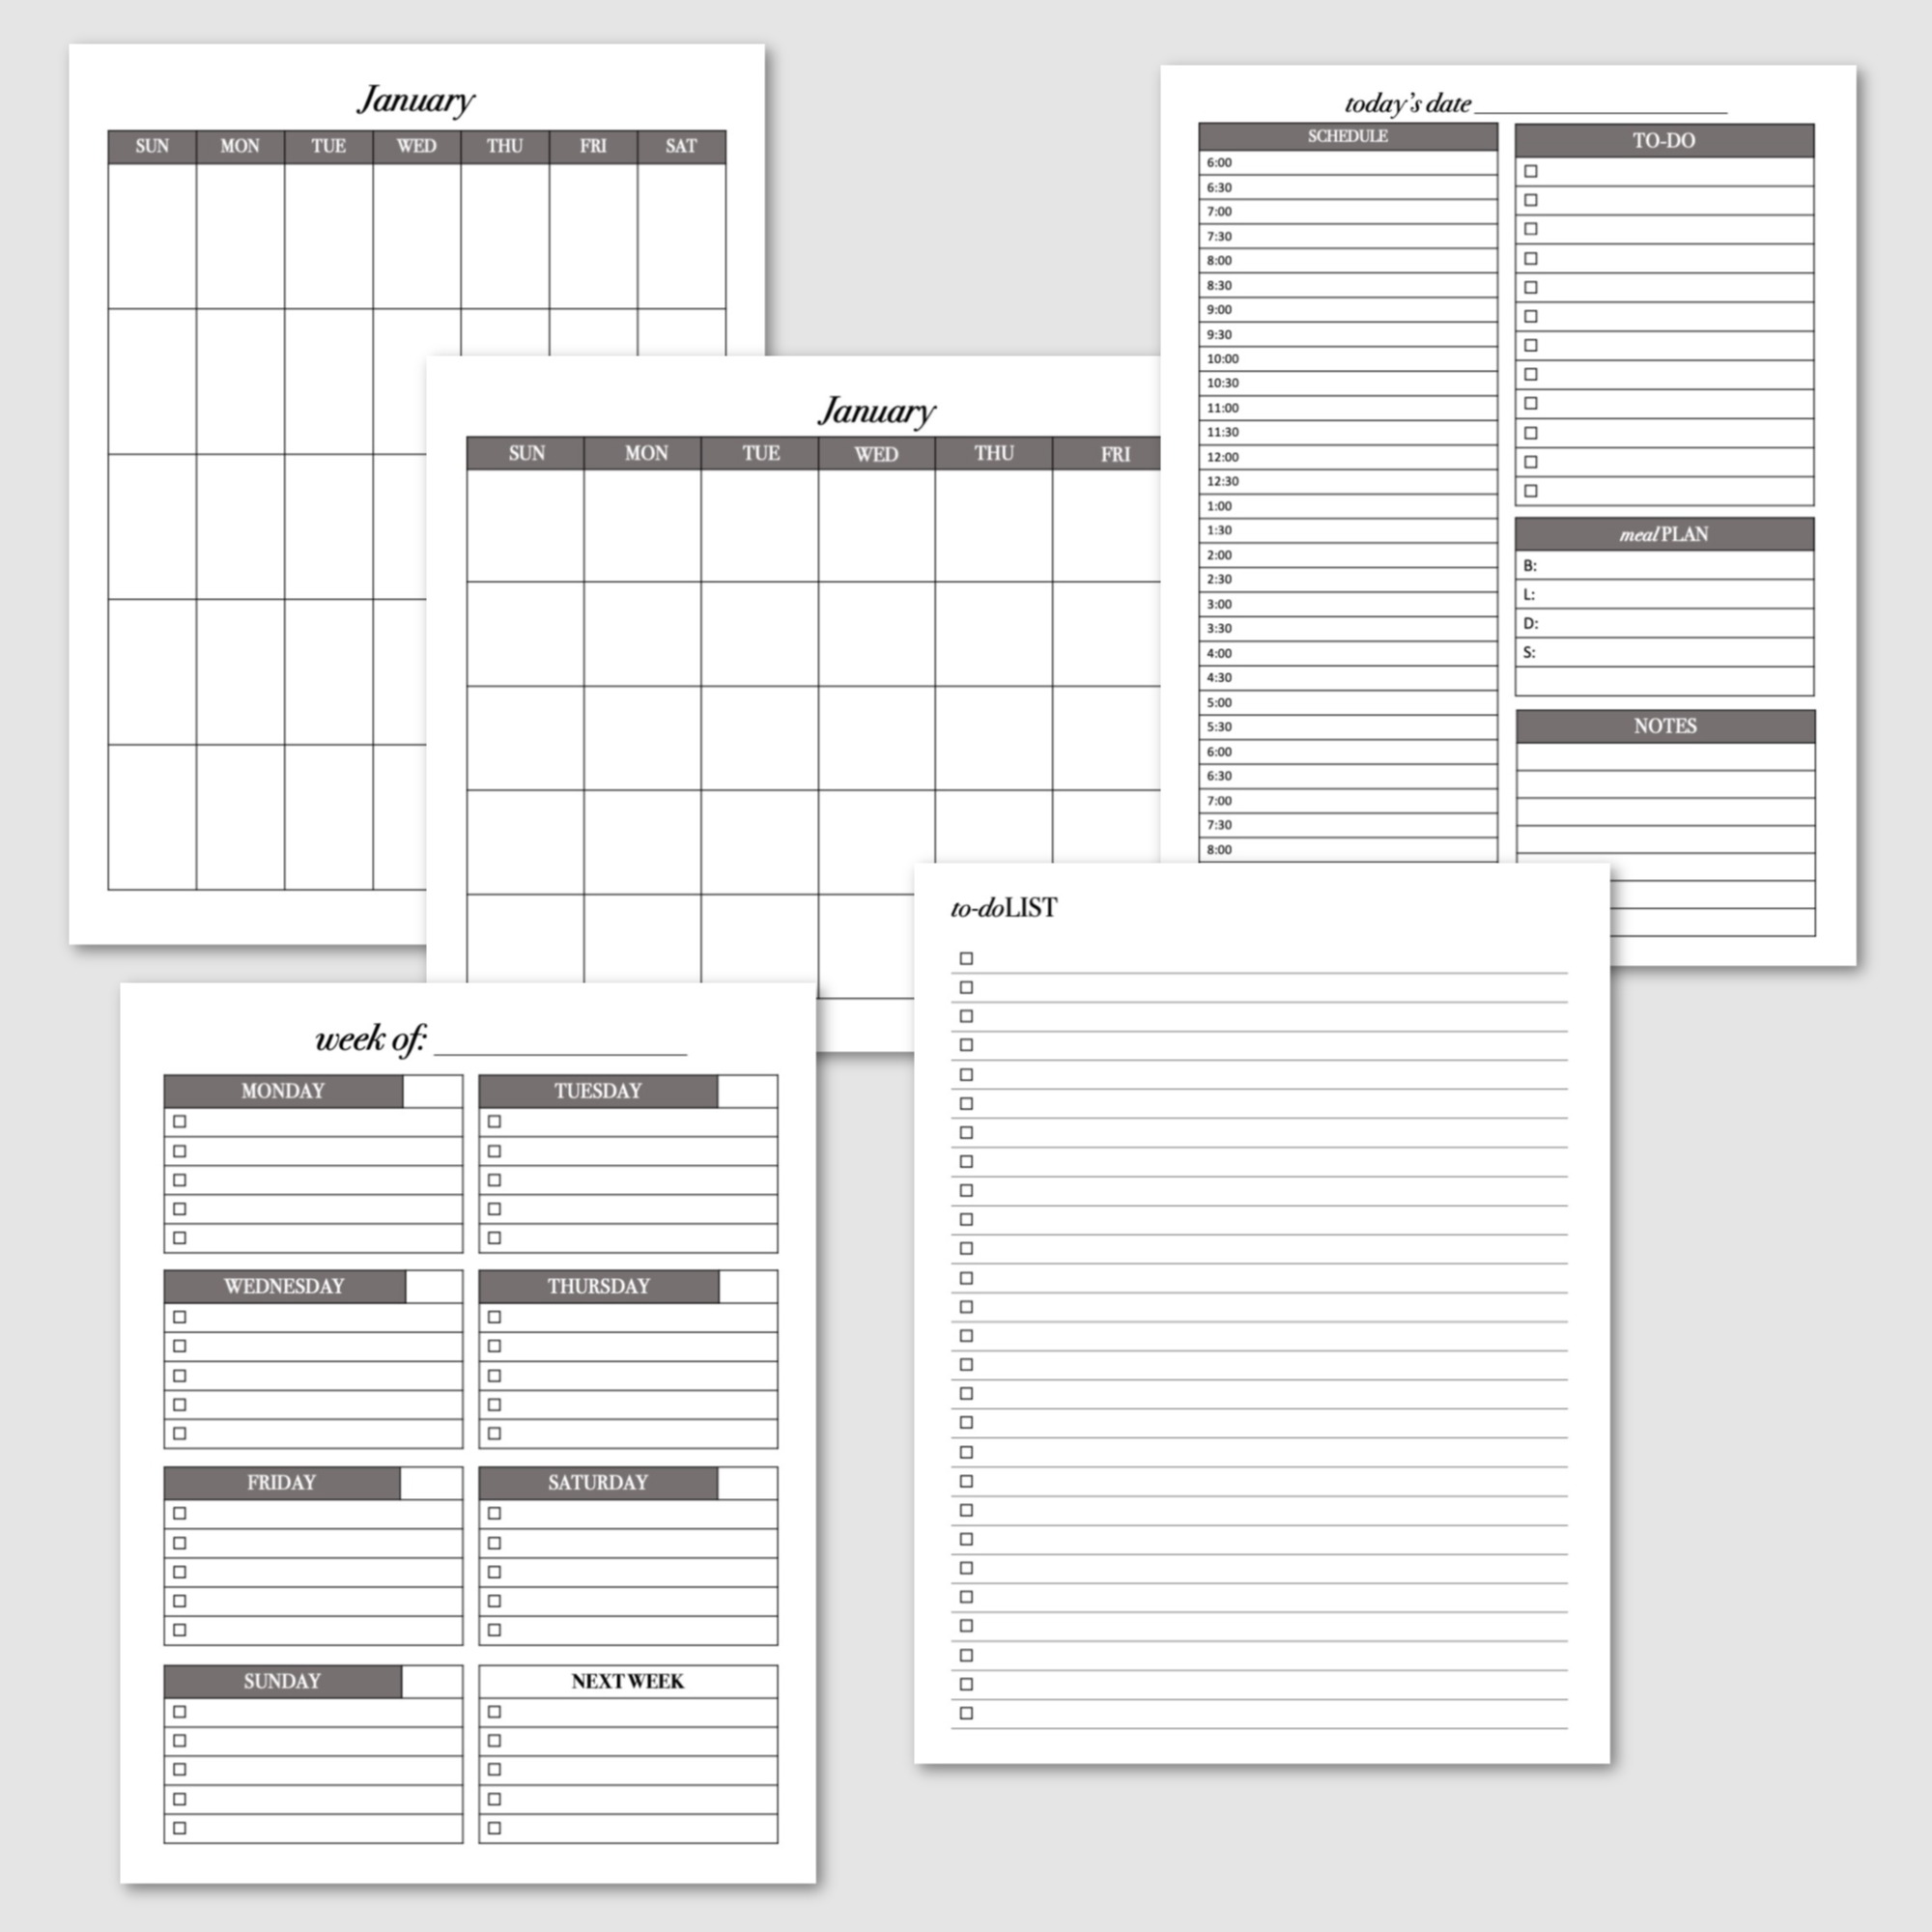 Calendars and to-do lists planner pack. Horizontal and vertical perpetual calendars, daily planner, 2 weekly planner pages, and the to-do list and checklist